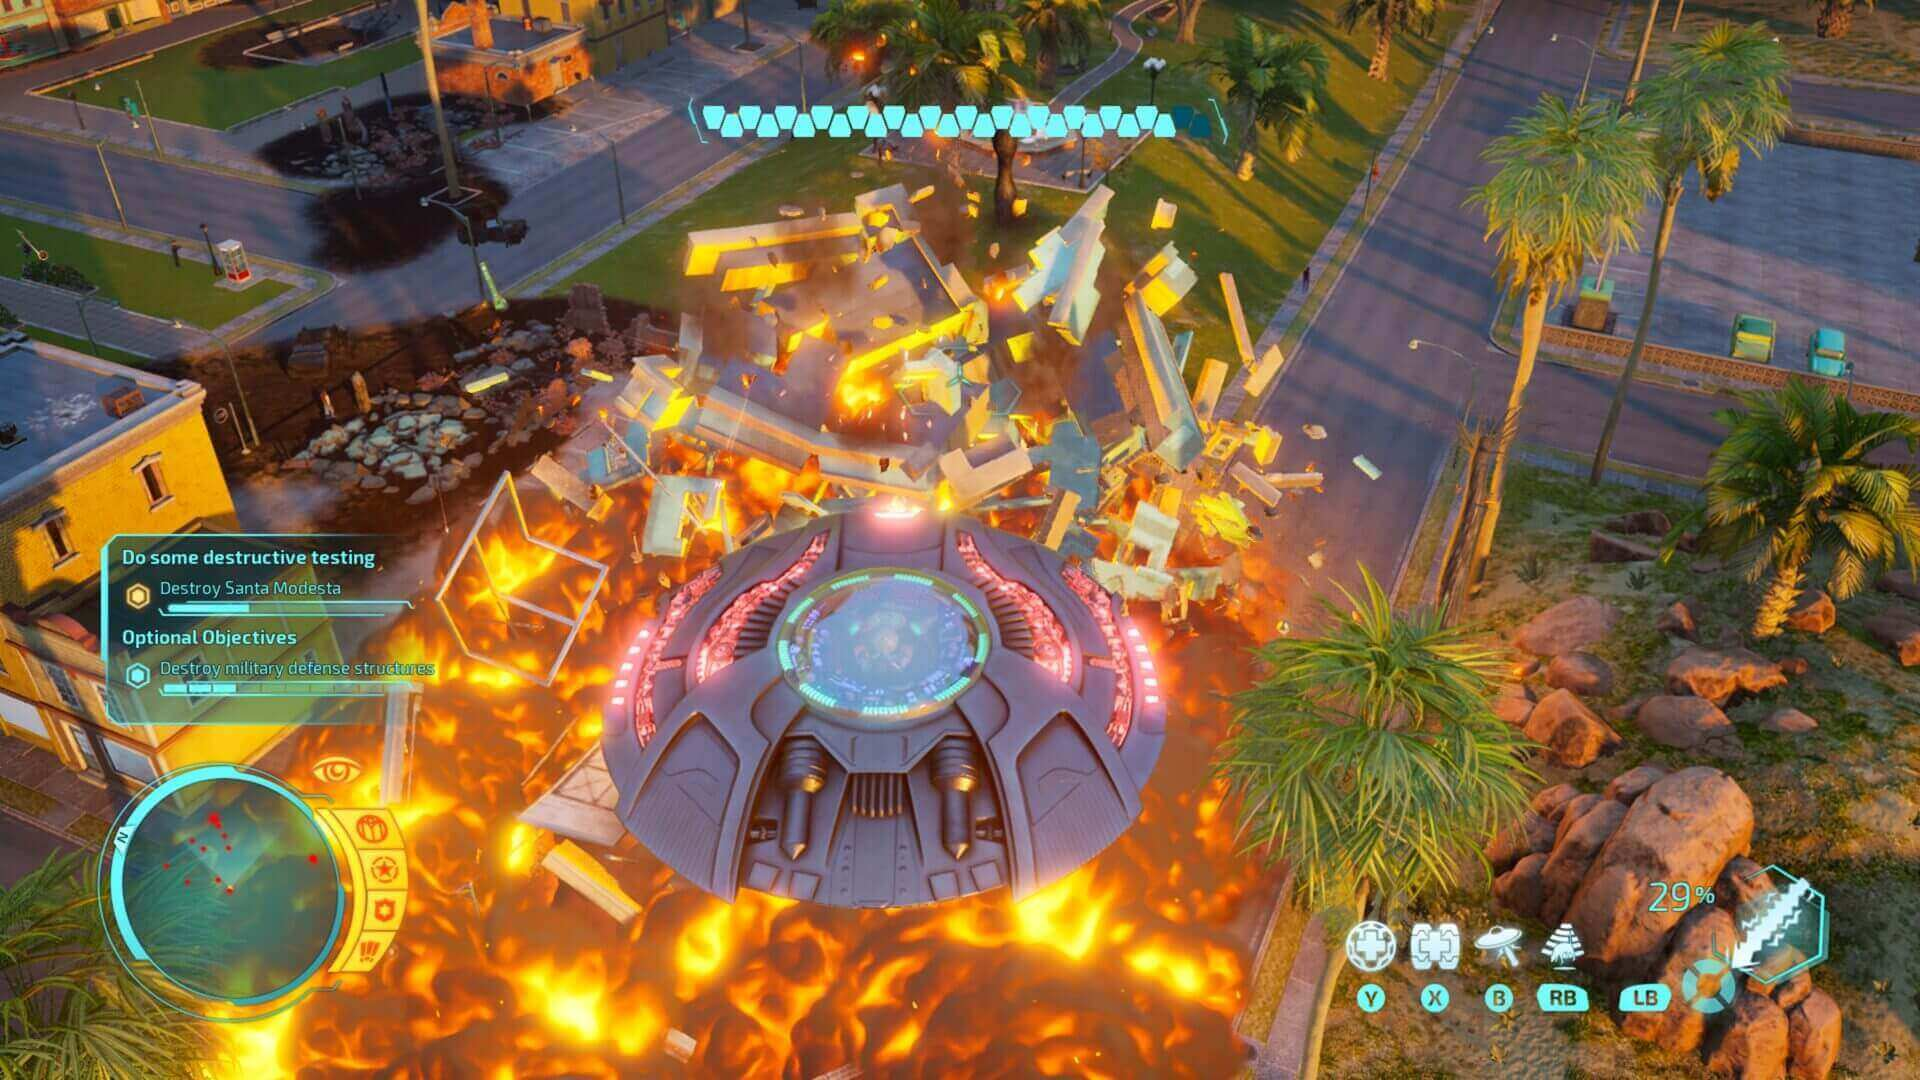 Análise Destroy All Humans Remake, Delfos, THQ Nordic, Black Forest Games, Delfos